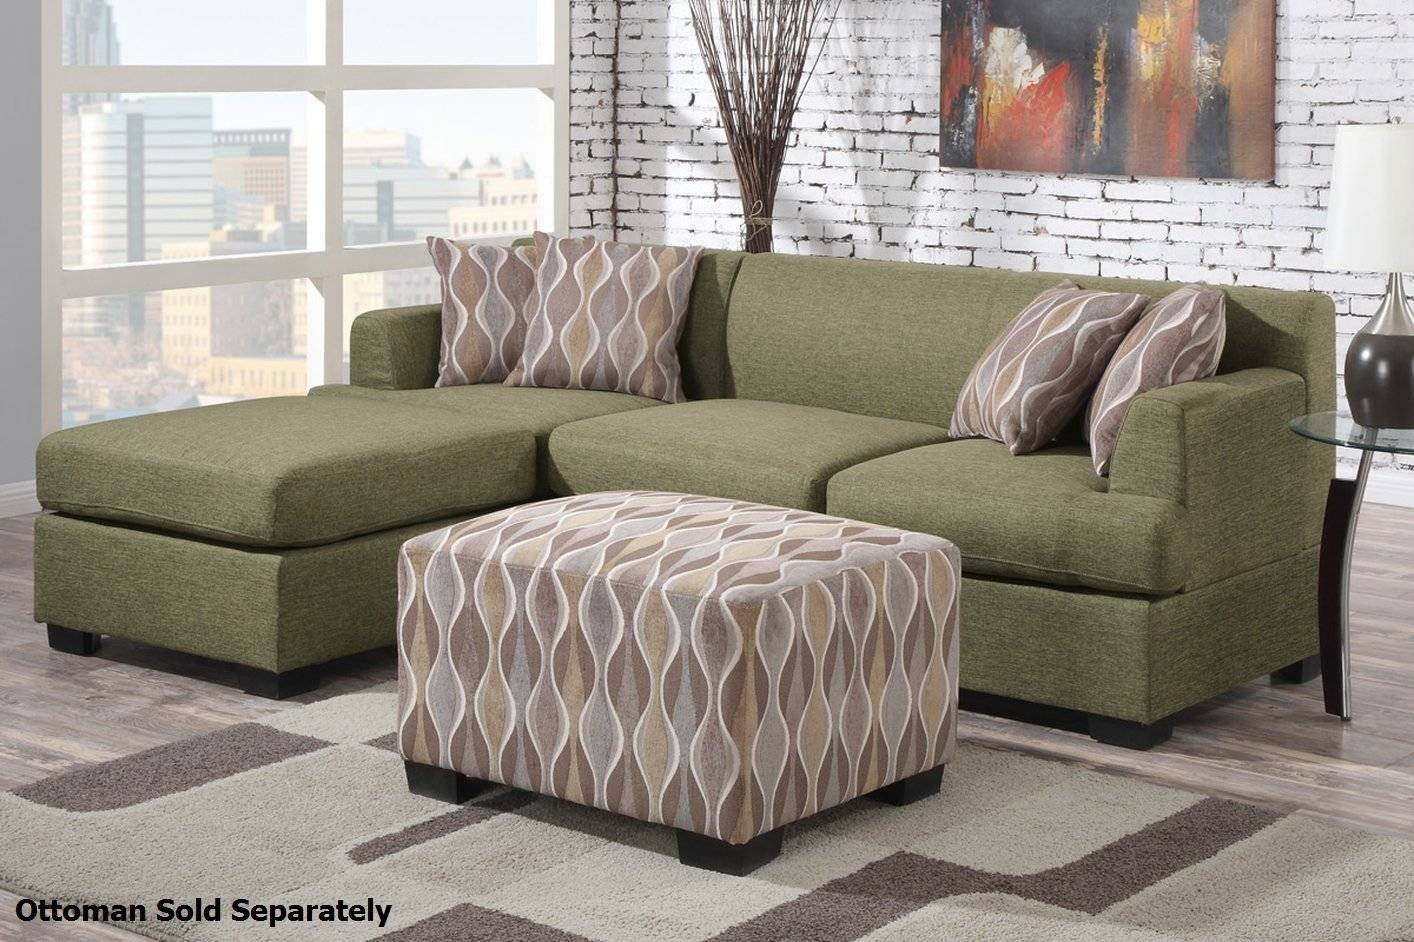 Elegant Fabric Sectional Sofas 78 About Remodel Sofa Room Ideas with Elegant Fabric Sofas (Image 4 of 30)